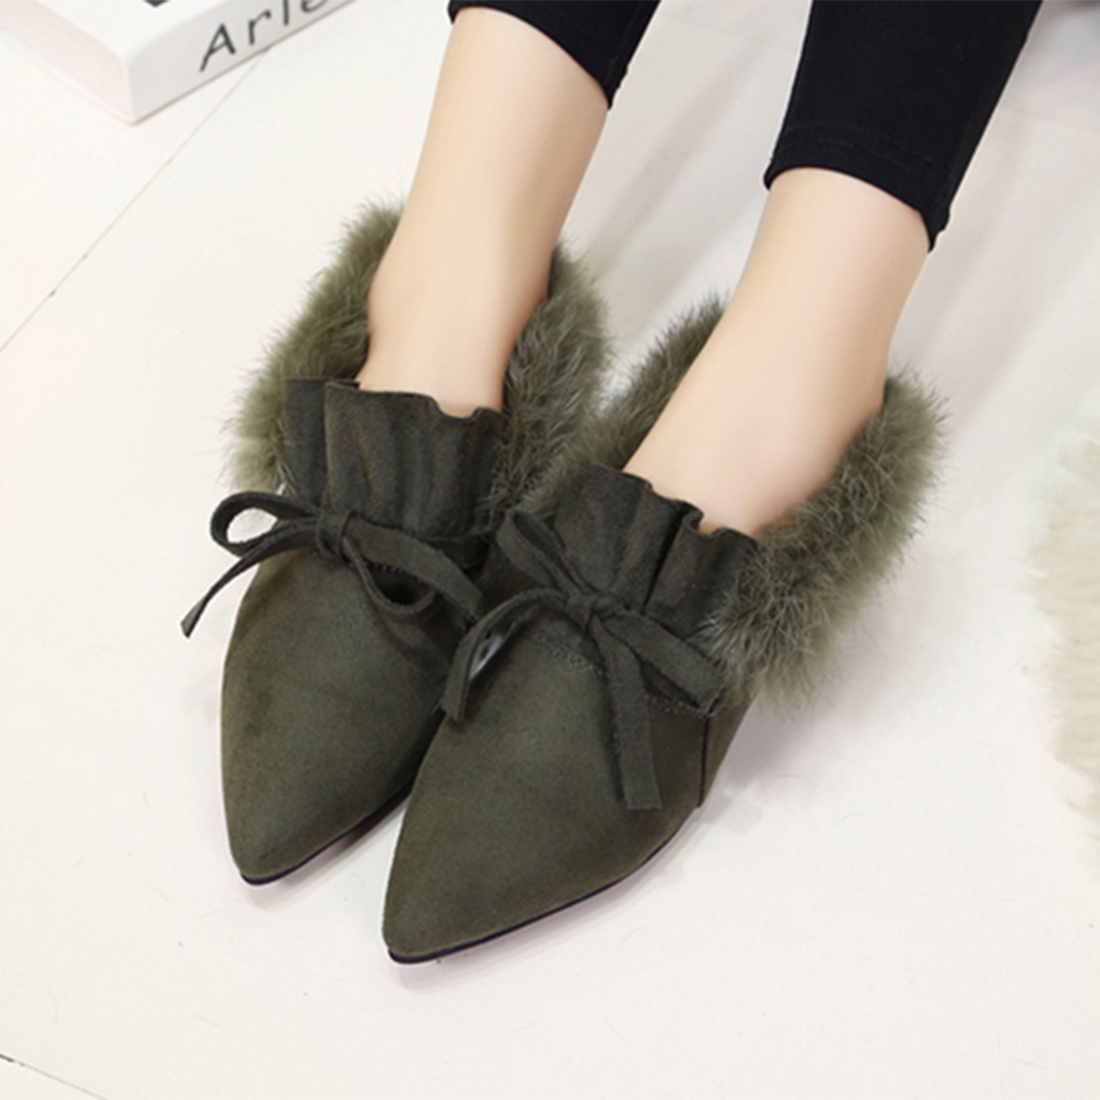 2017 Autumn Winter Women Ballet Flats Lovely Bow Warm Rabbit Fur Comfort Cotton Shoes Woman Pointed Loafers Slip On Flats lovely autumn winter lover cotton padded women